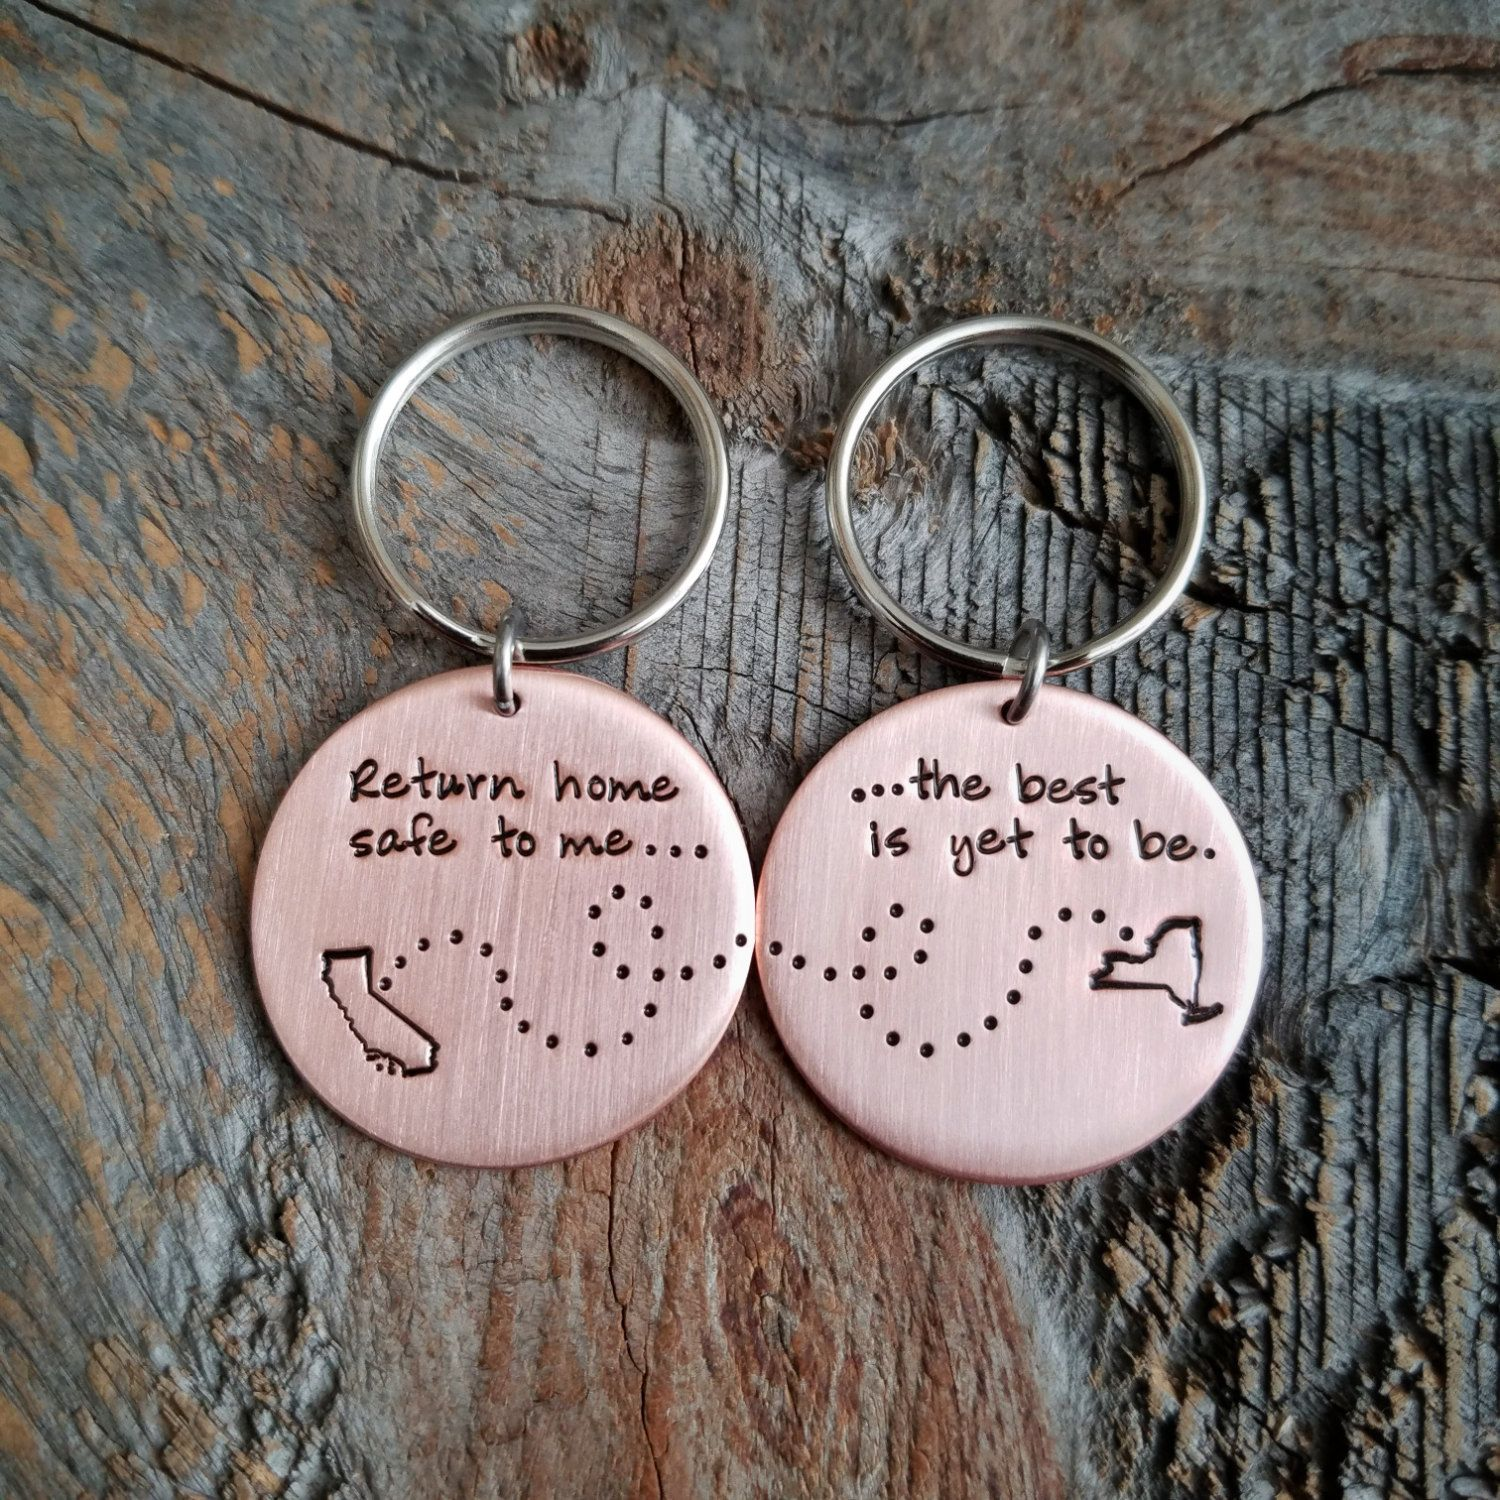 Long Distance Relationship Gift Couples Boyfriend Girlfriend Husband Wife States Keychain The Best Is Yet To Be Copper By TheLonelyMoose